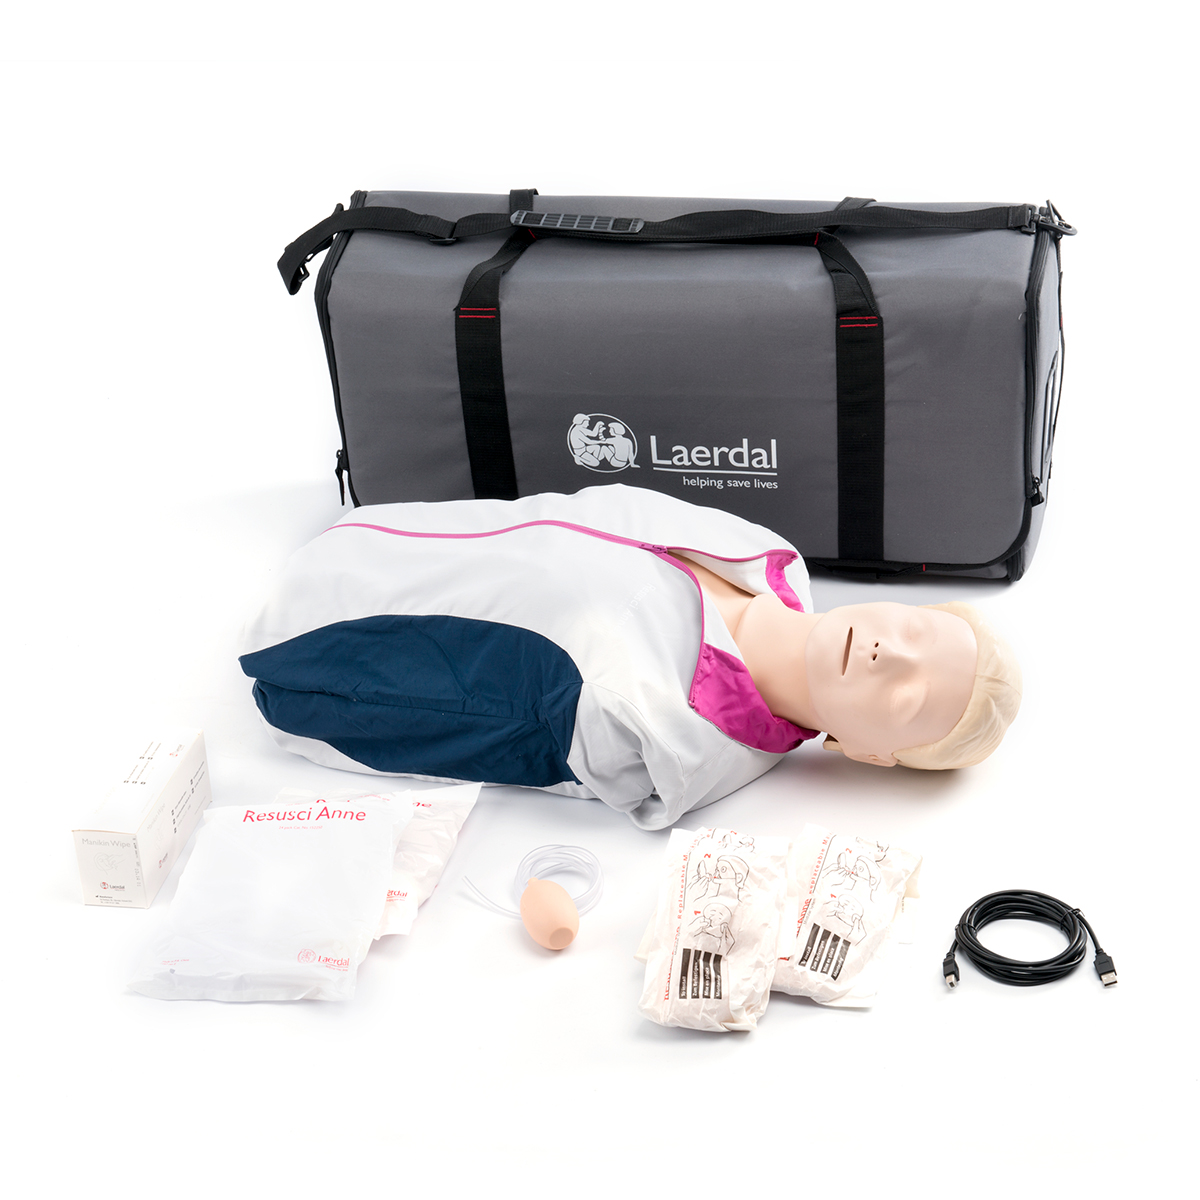 Laerdal Resusci® Anne QCPR First Aid Torso with Carry Bag and Mat